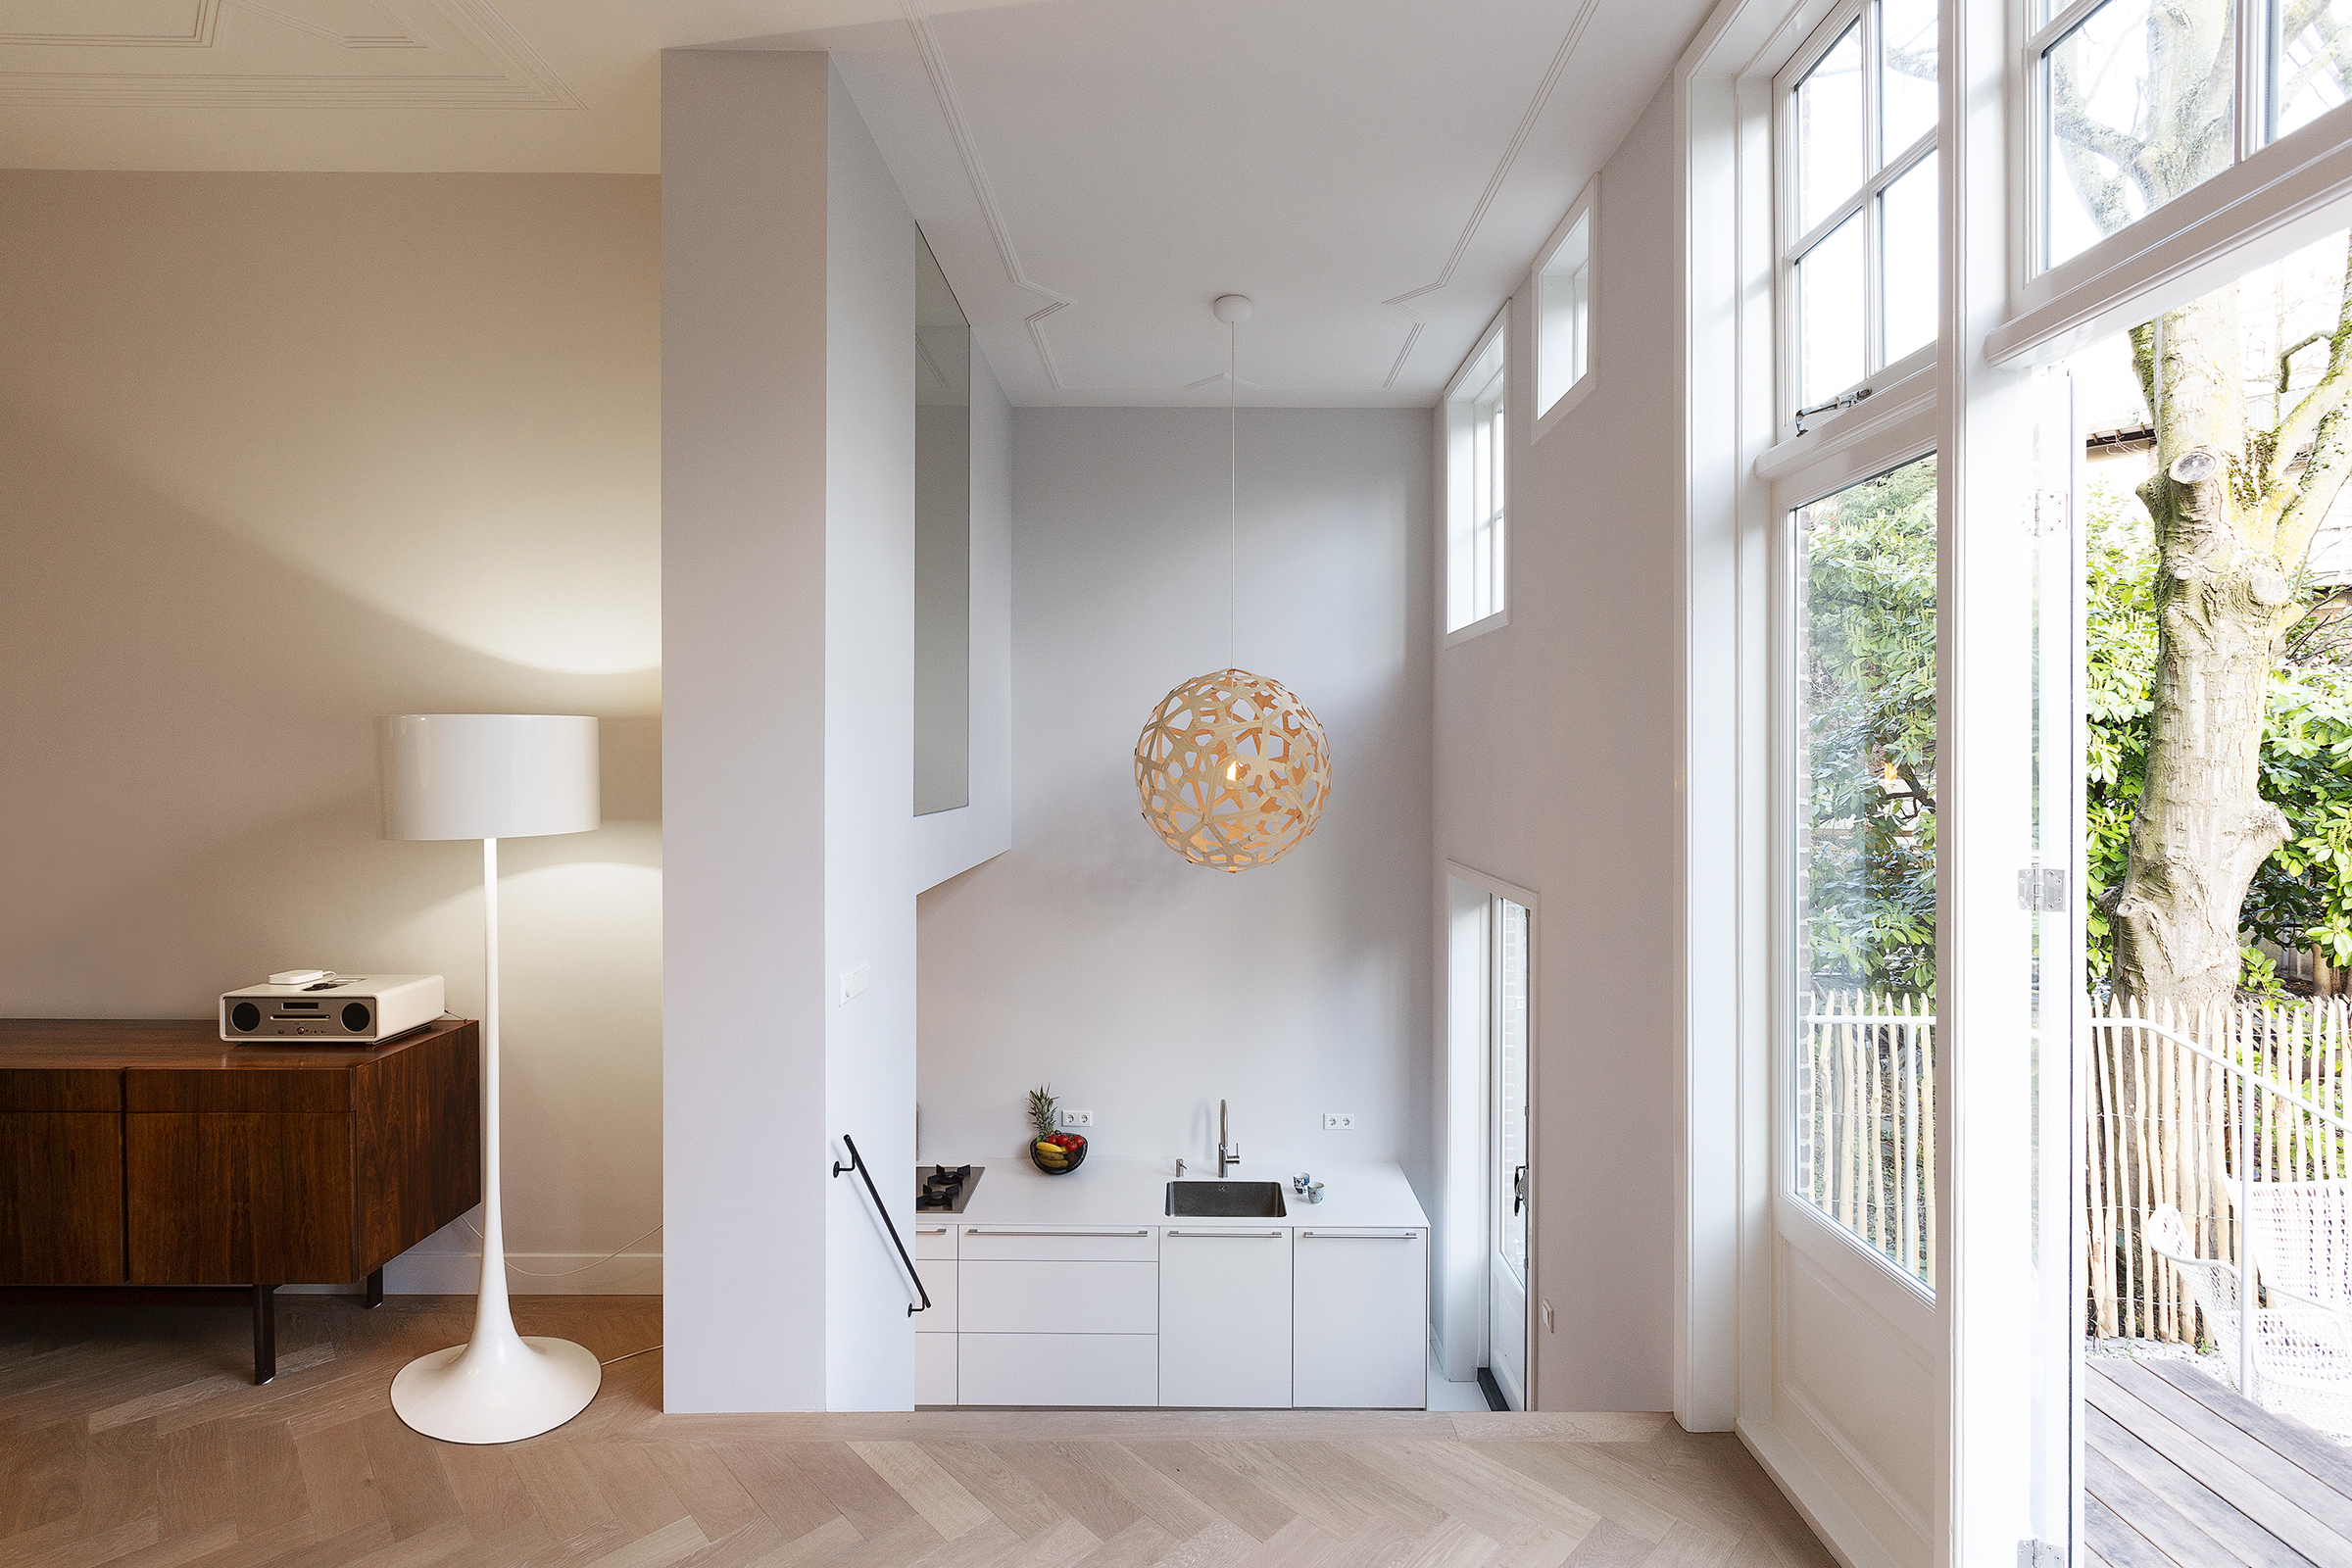 By sacrificing a part of the mezzanine and making a large opening in the dividing wall the kitchen becomes part of the living area. A wide staircase completes the intervention